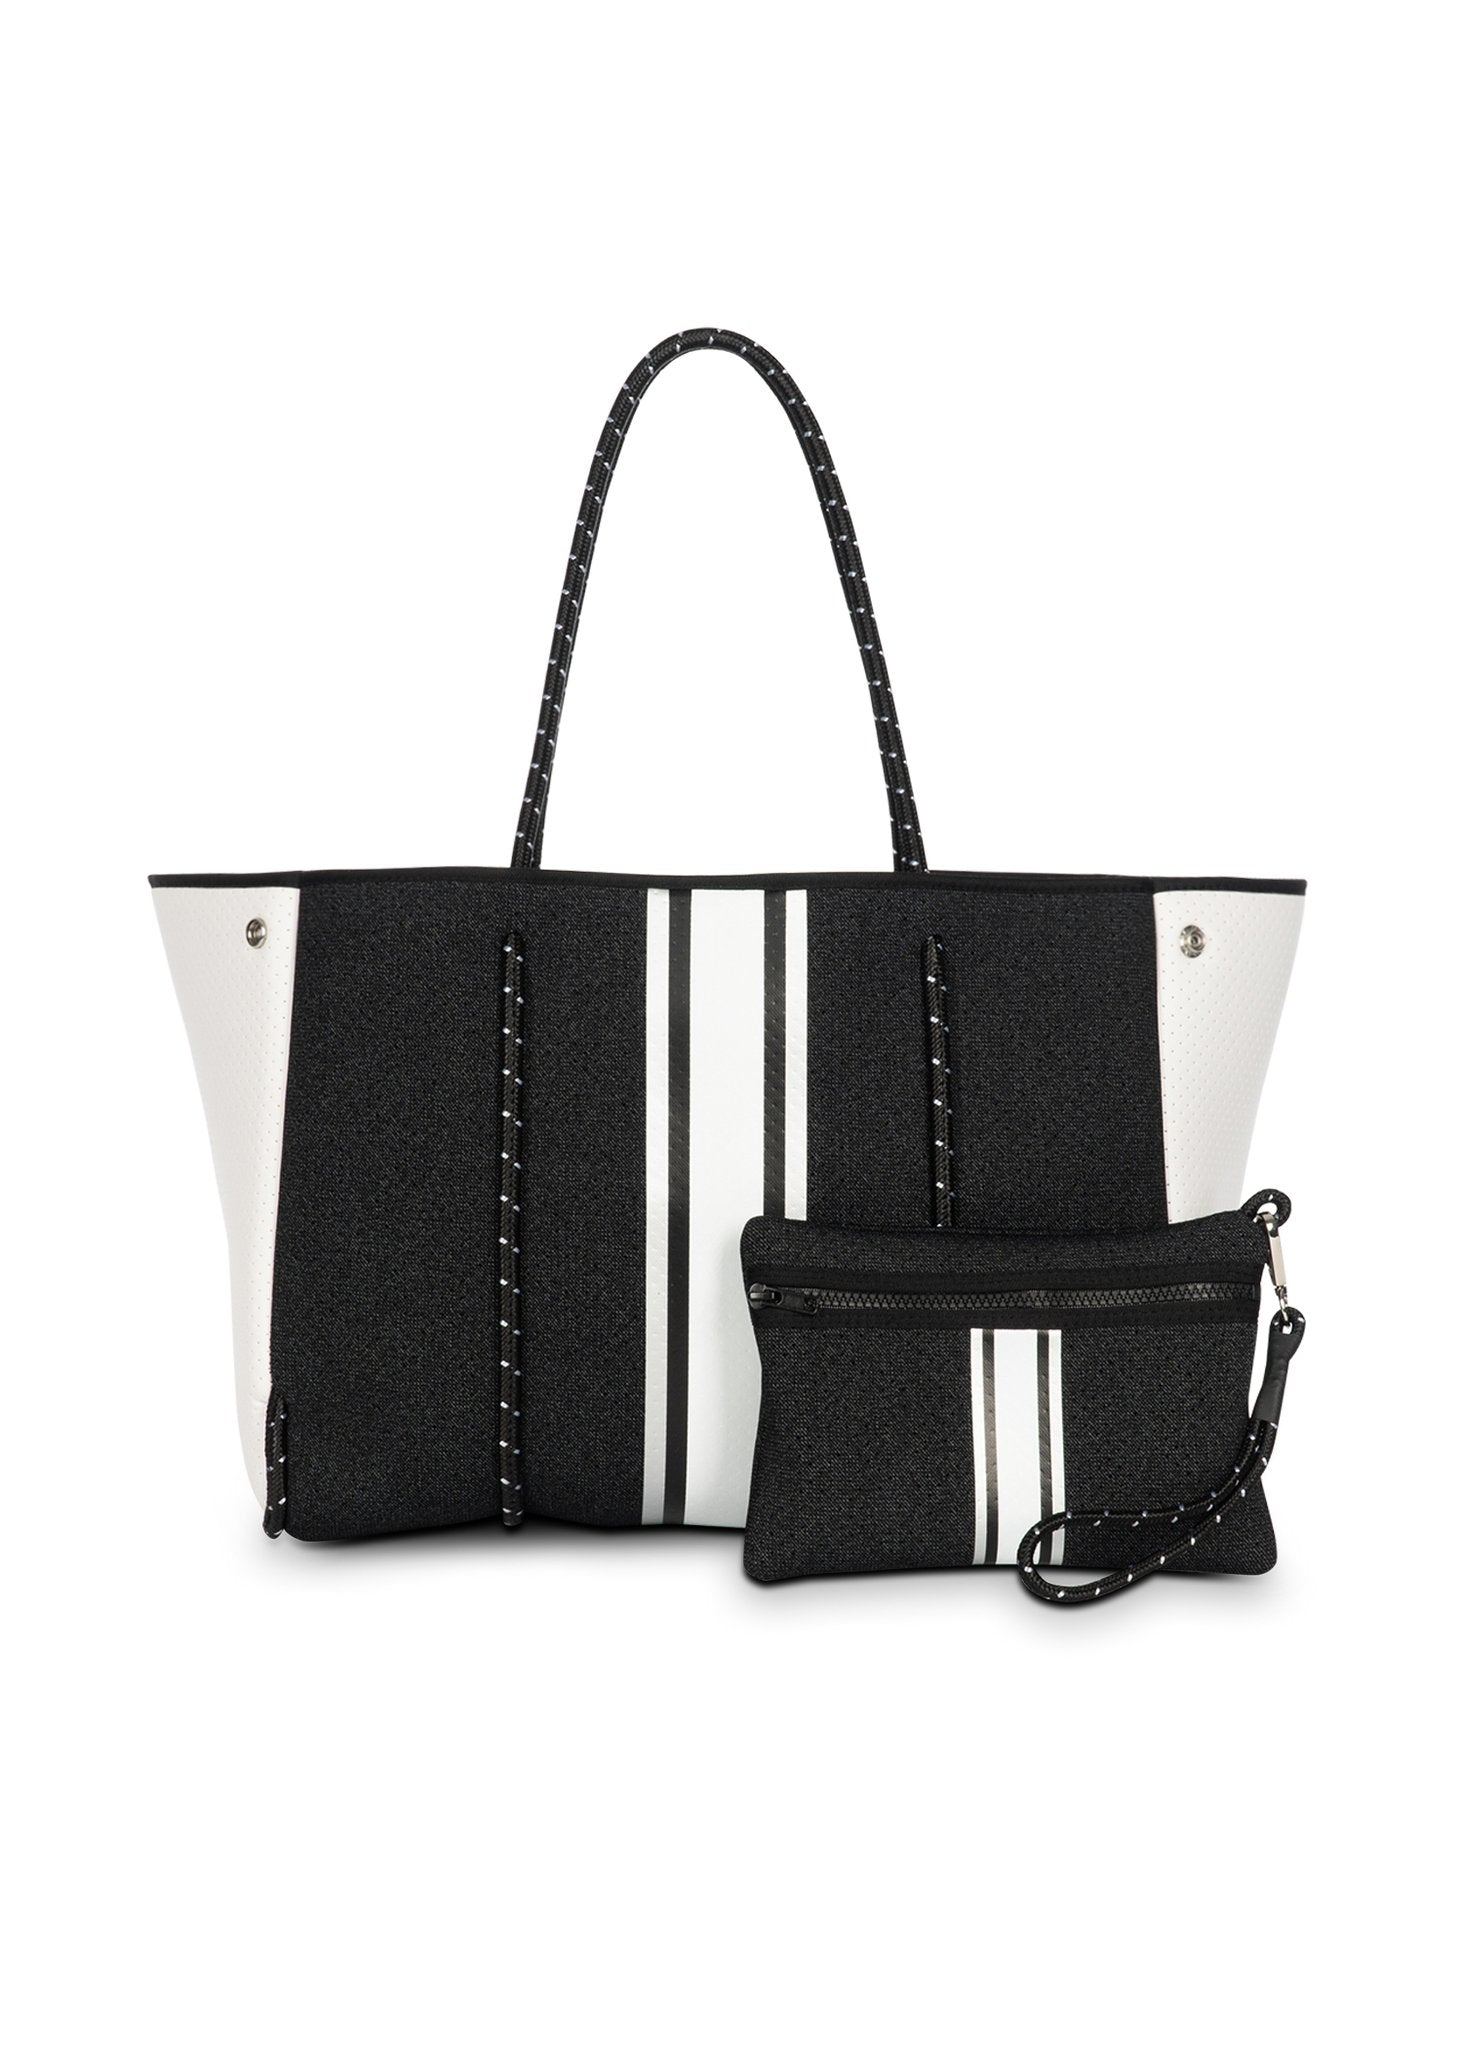 Haute Shore - Greyson Chic Neoprene Tote Bag w/Zipper Wristlet Inside (Greyson, Black Denim w/Silver, Black, & White stripe)